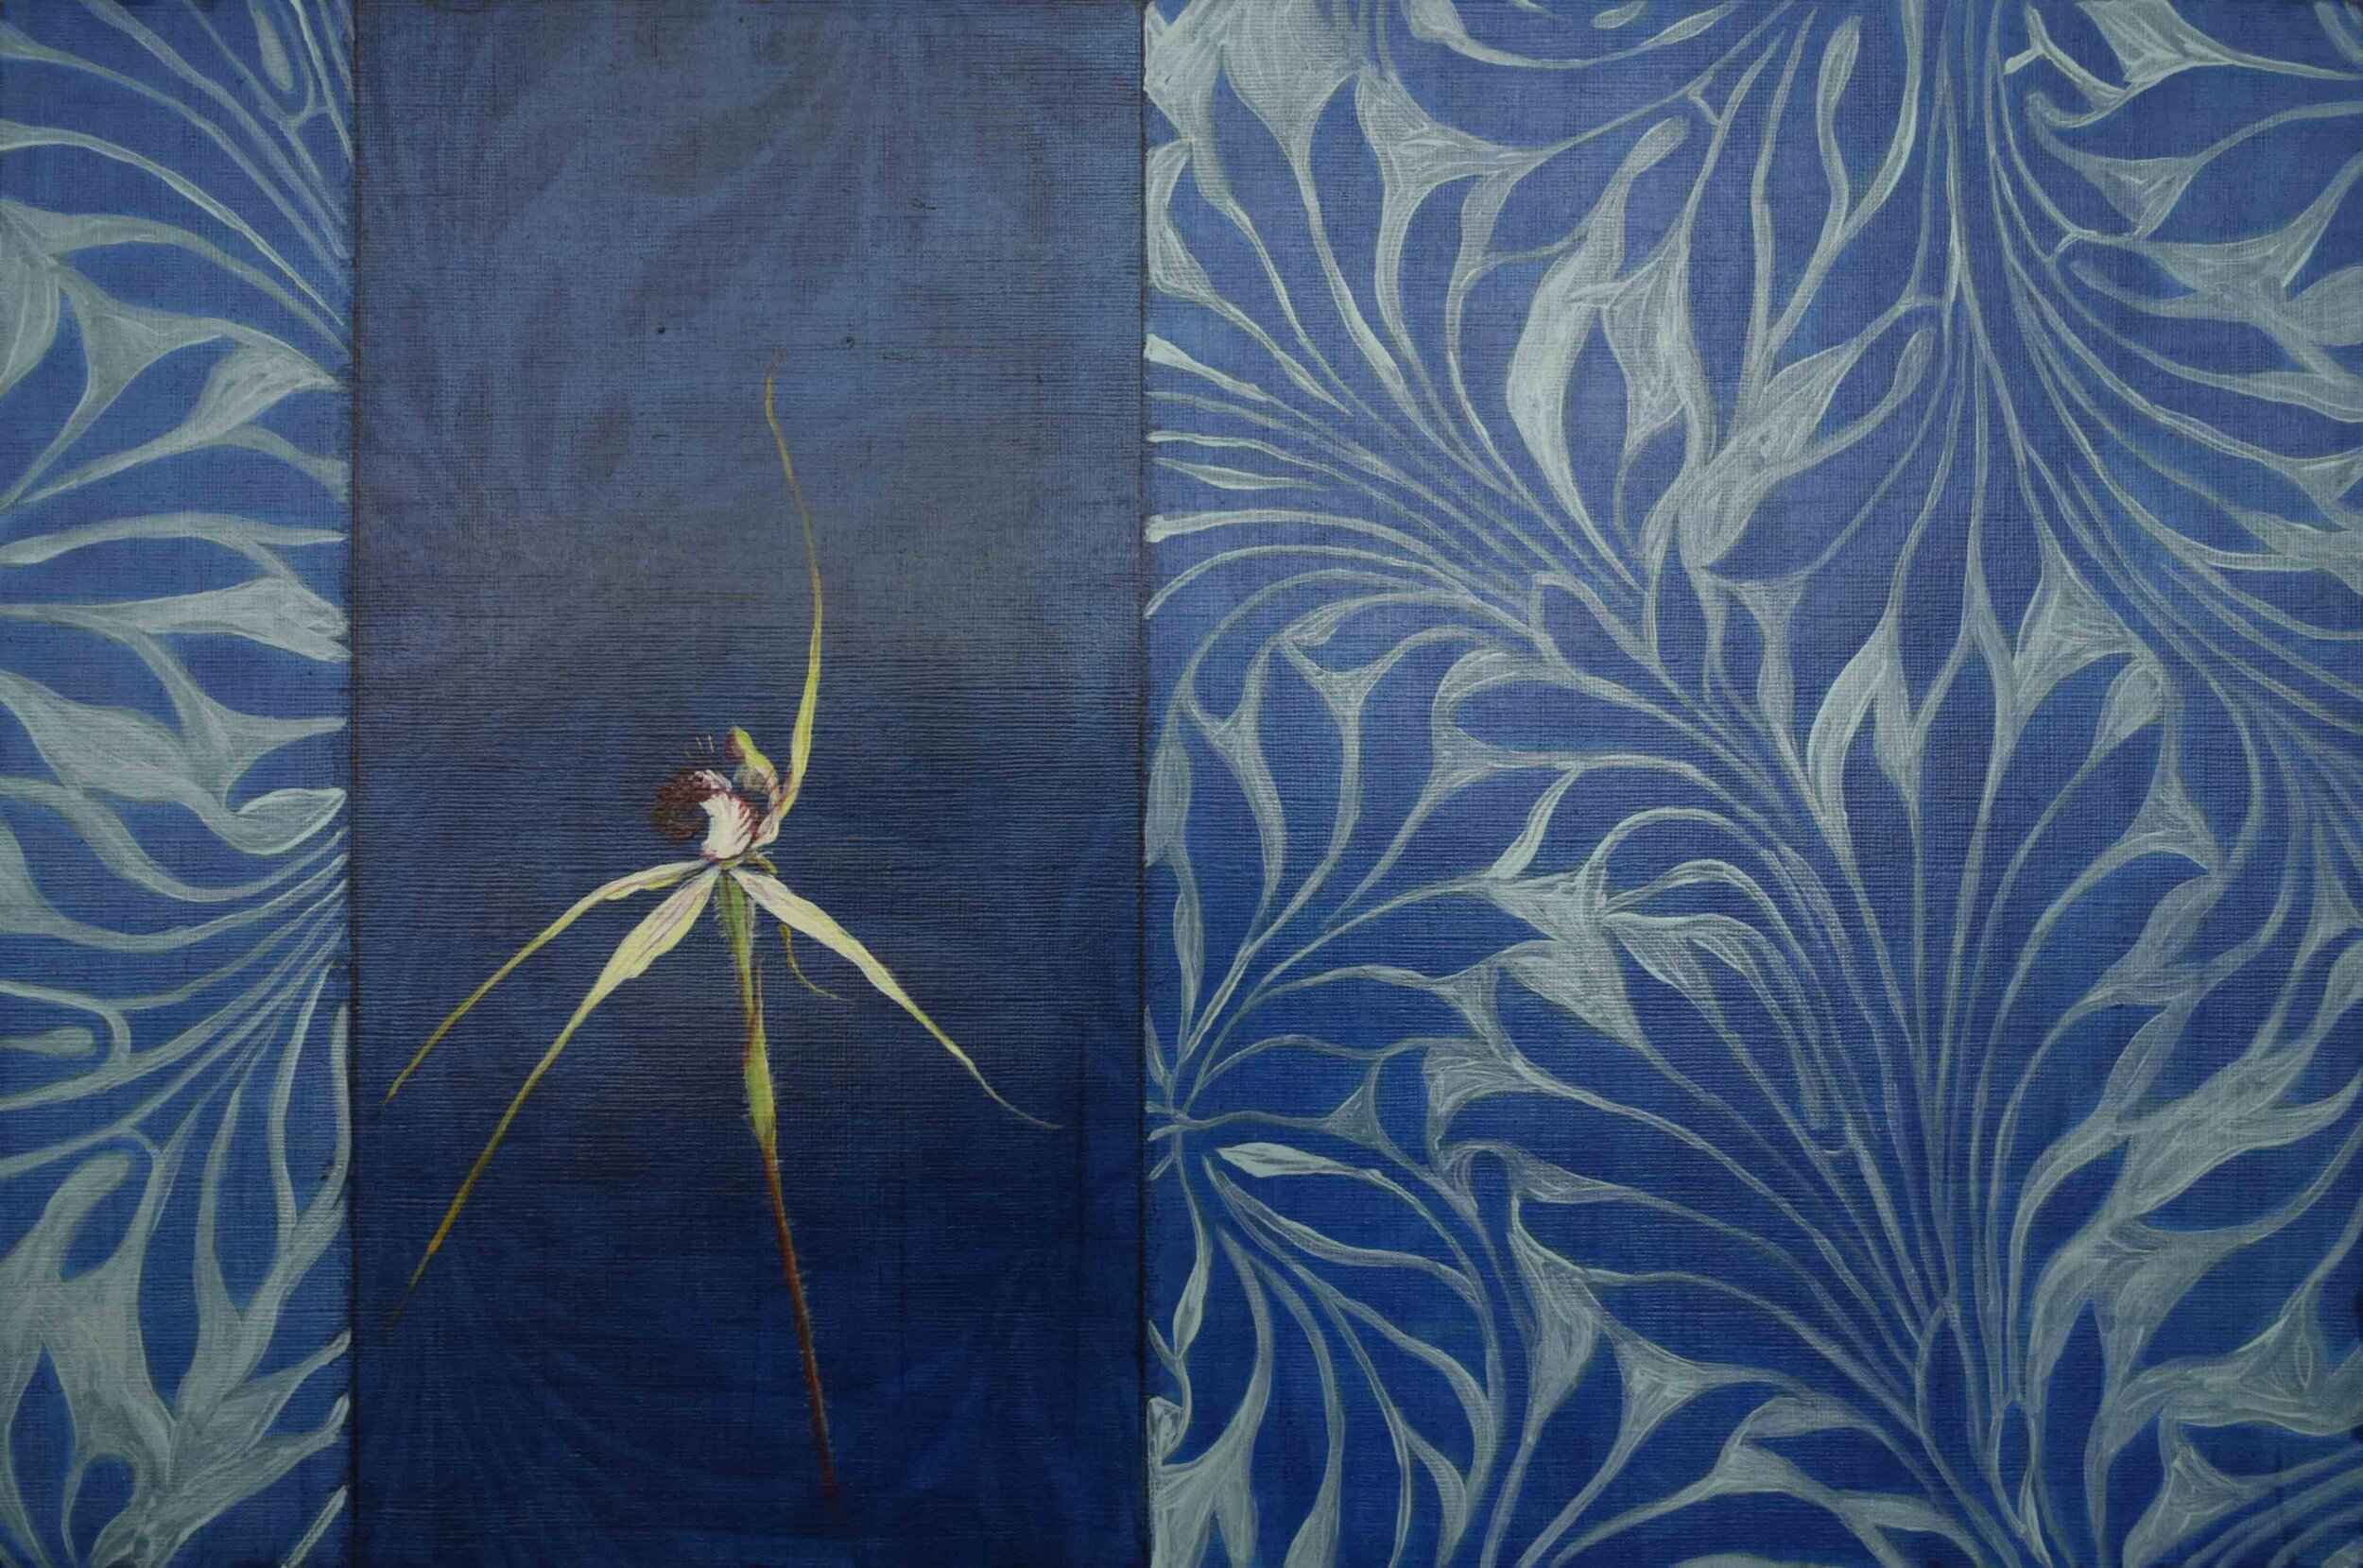 65. Clare McFarlane, Carousel Spider Orchid - blue study, 2019, acrylic and aerosol on paper, 30.5 x 45.8 cm $550